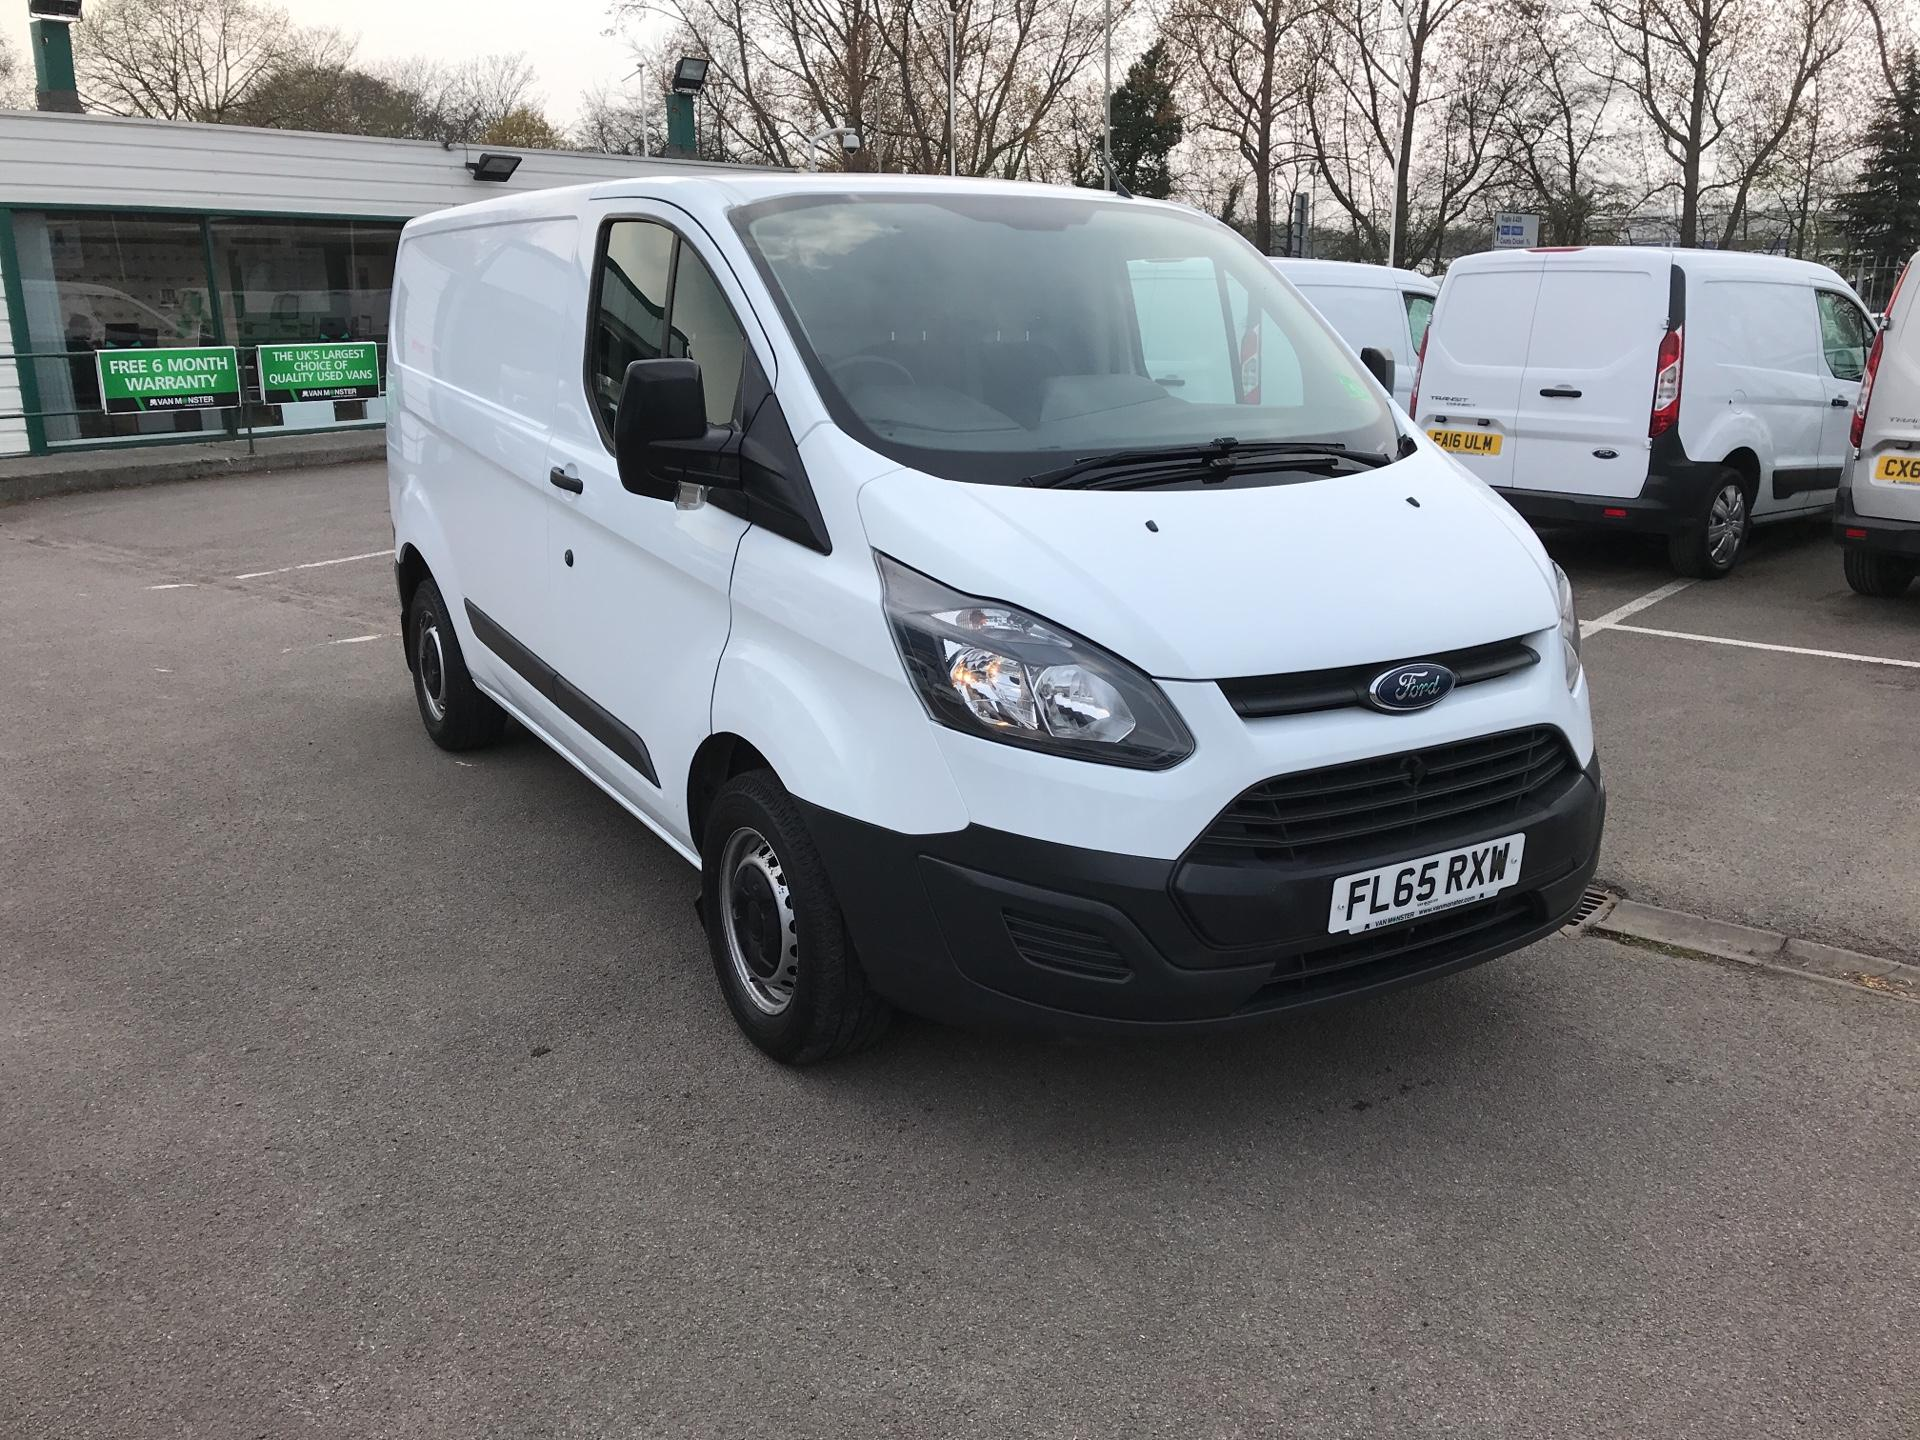 2015 Ford Transit Custom 2.2 Tdci 100Ps Low Roof Van (FL65RXW)